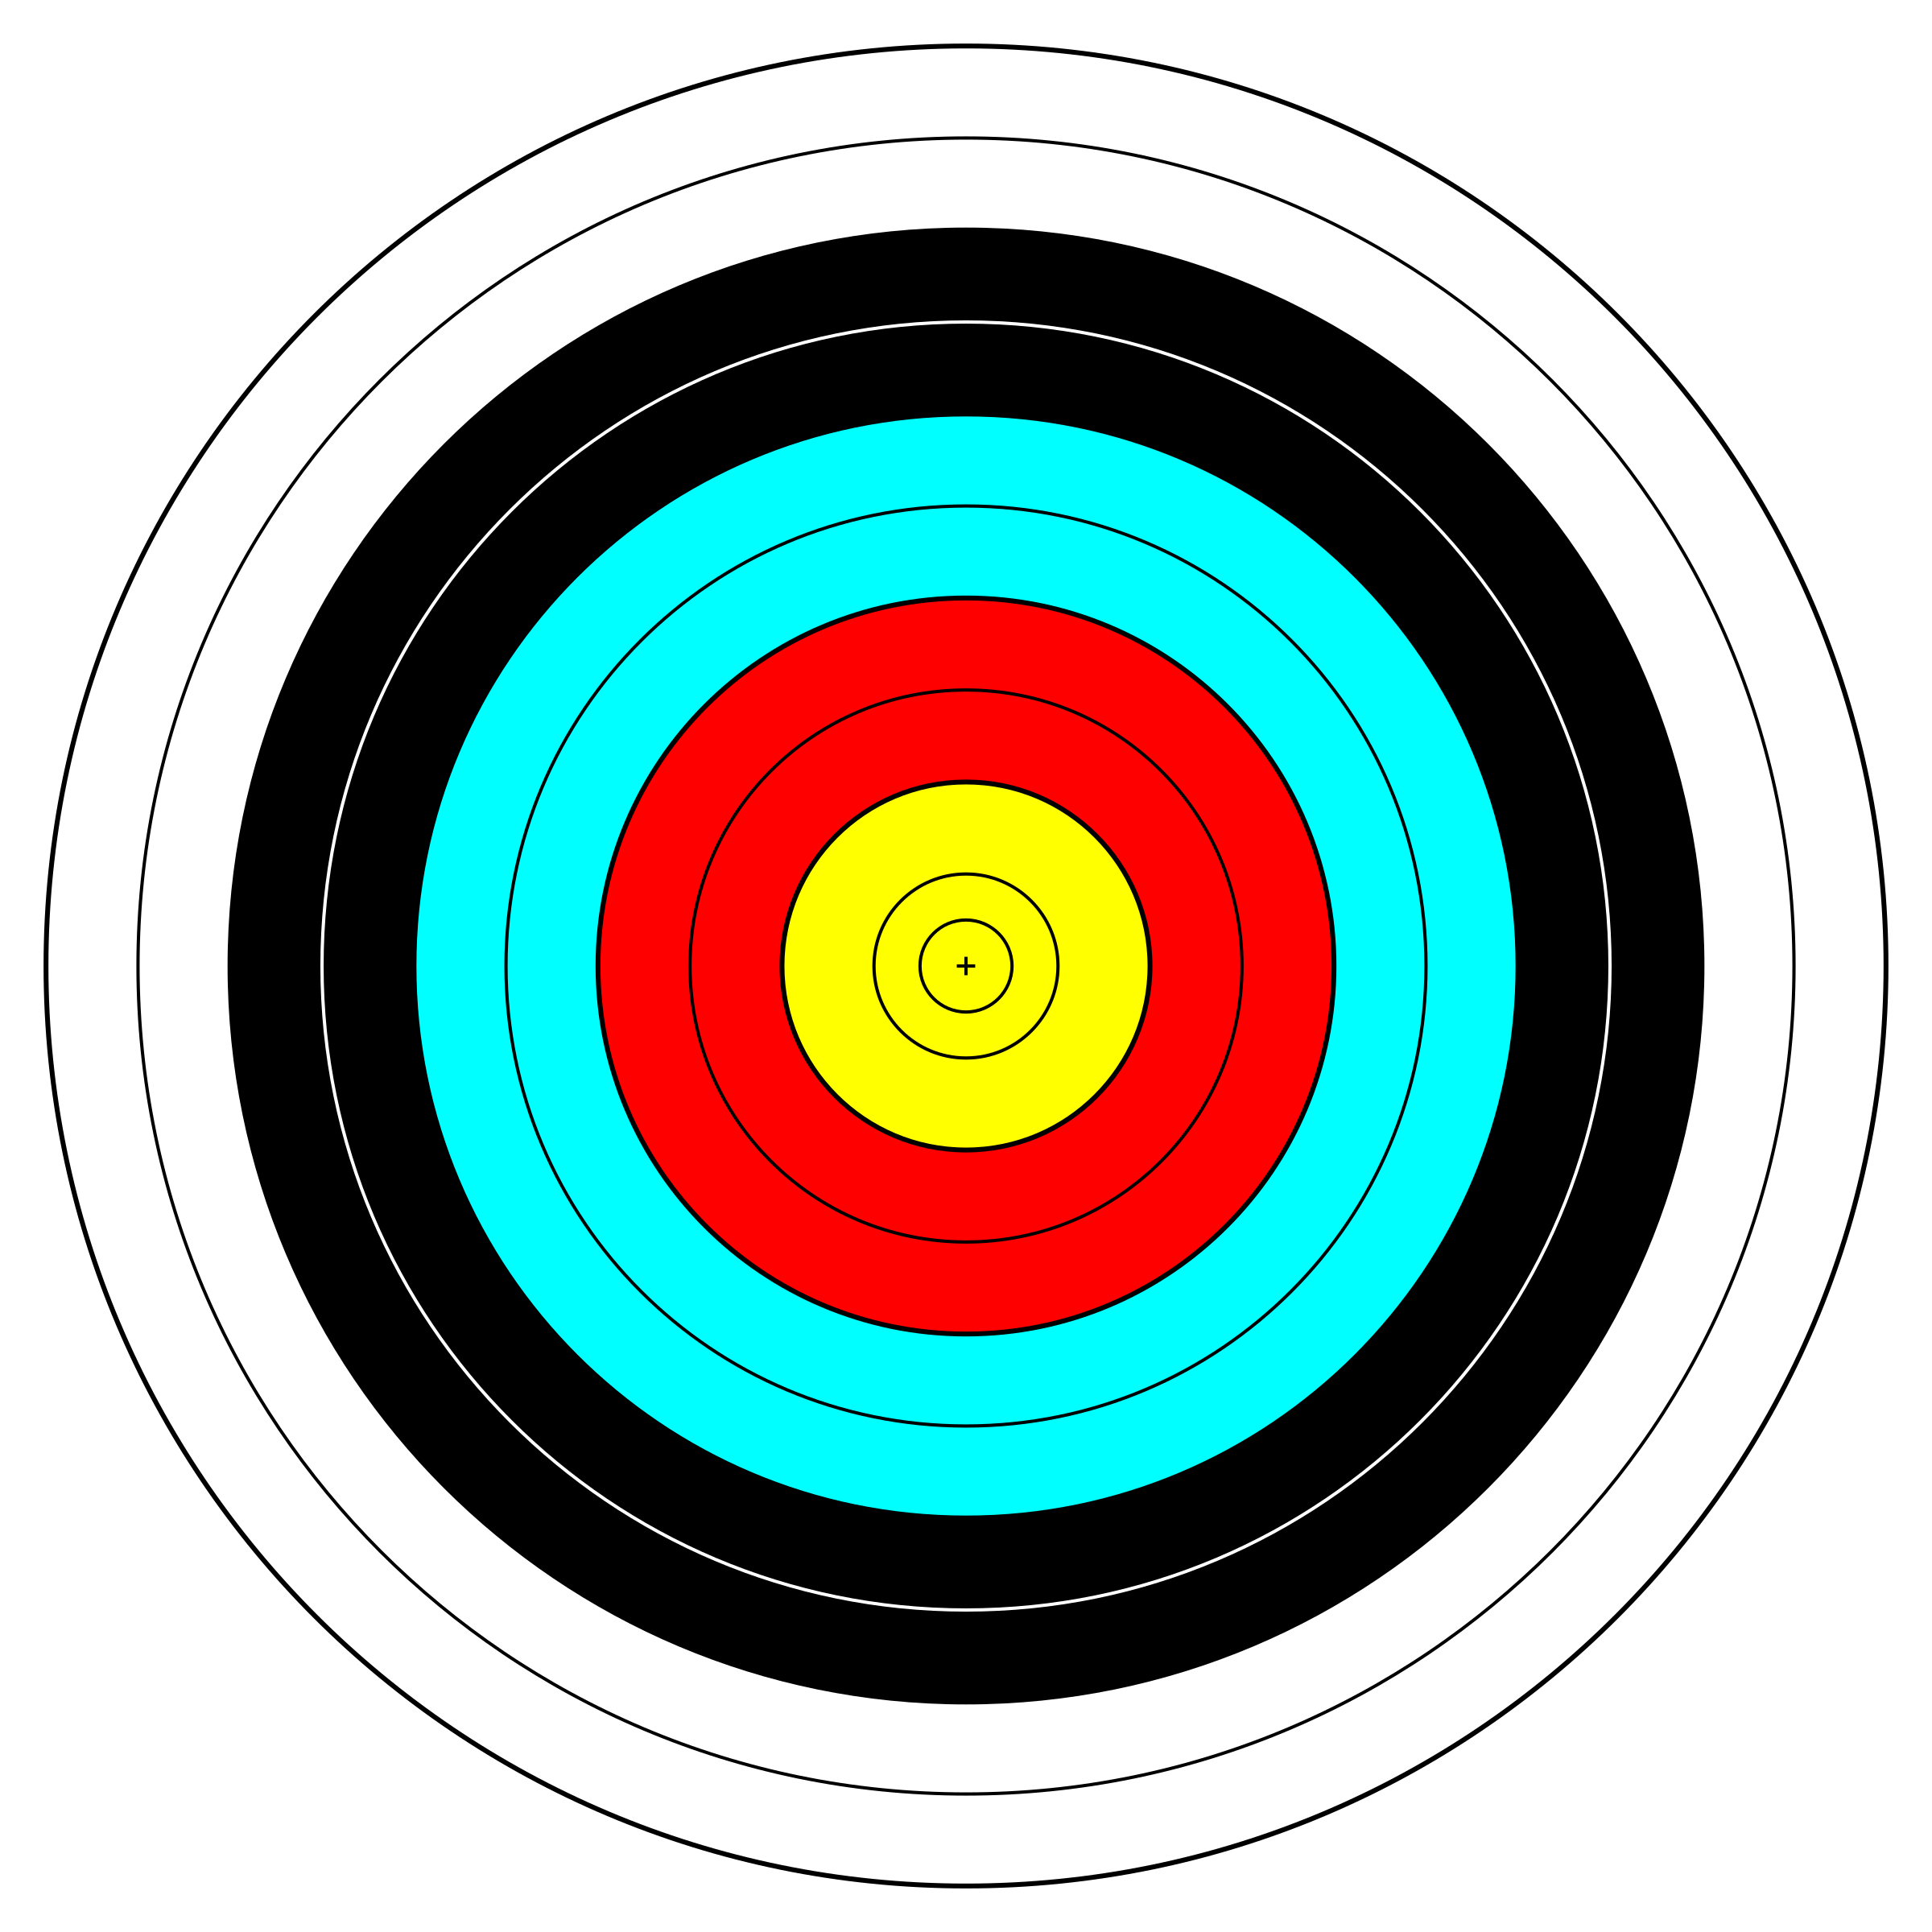 jpg royalty free library Bullseye clipart target gun. Setting targets and goals